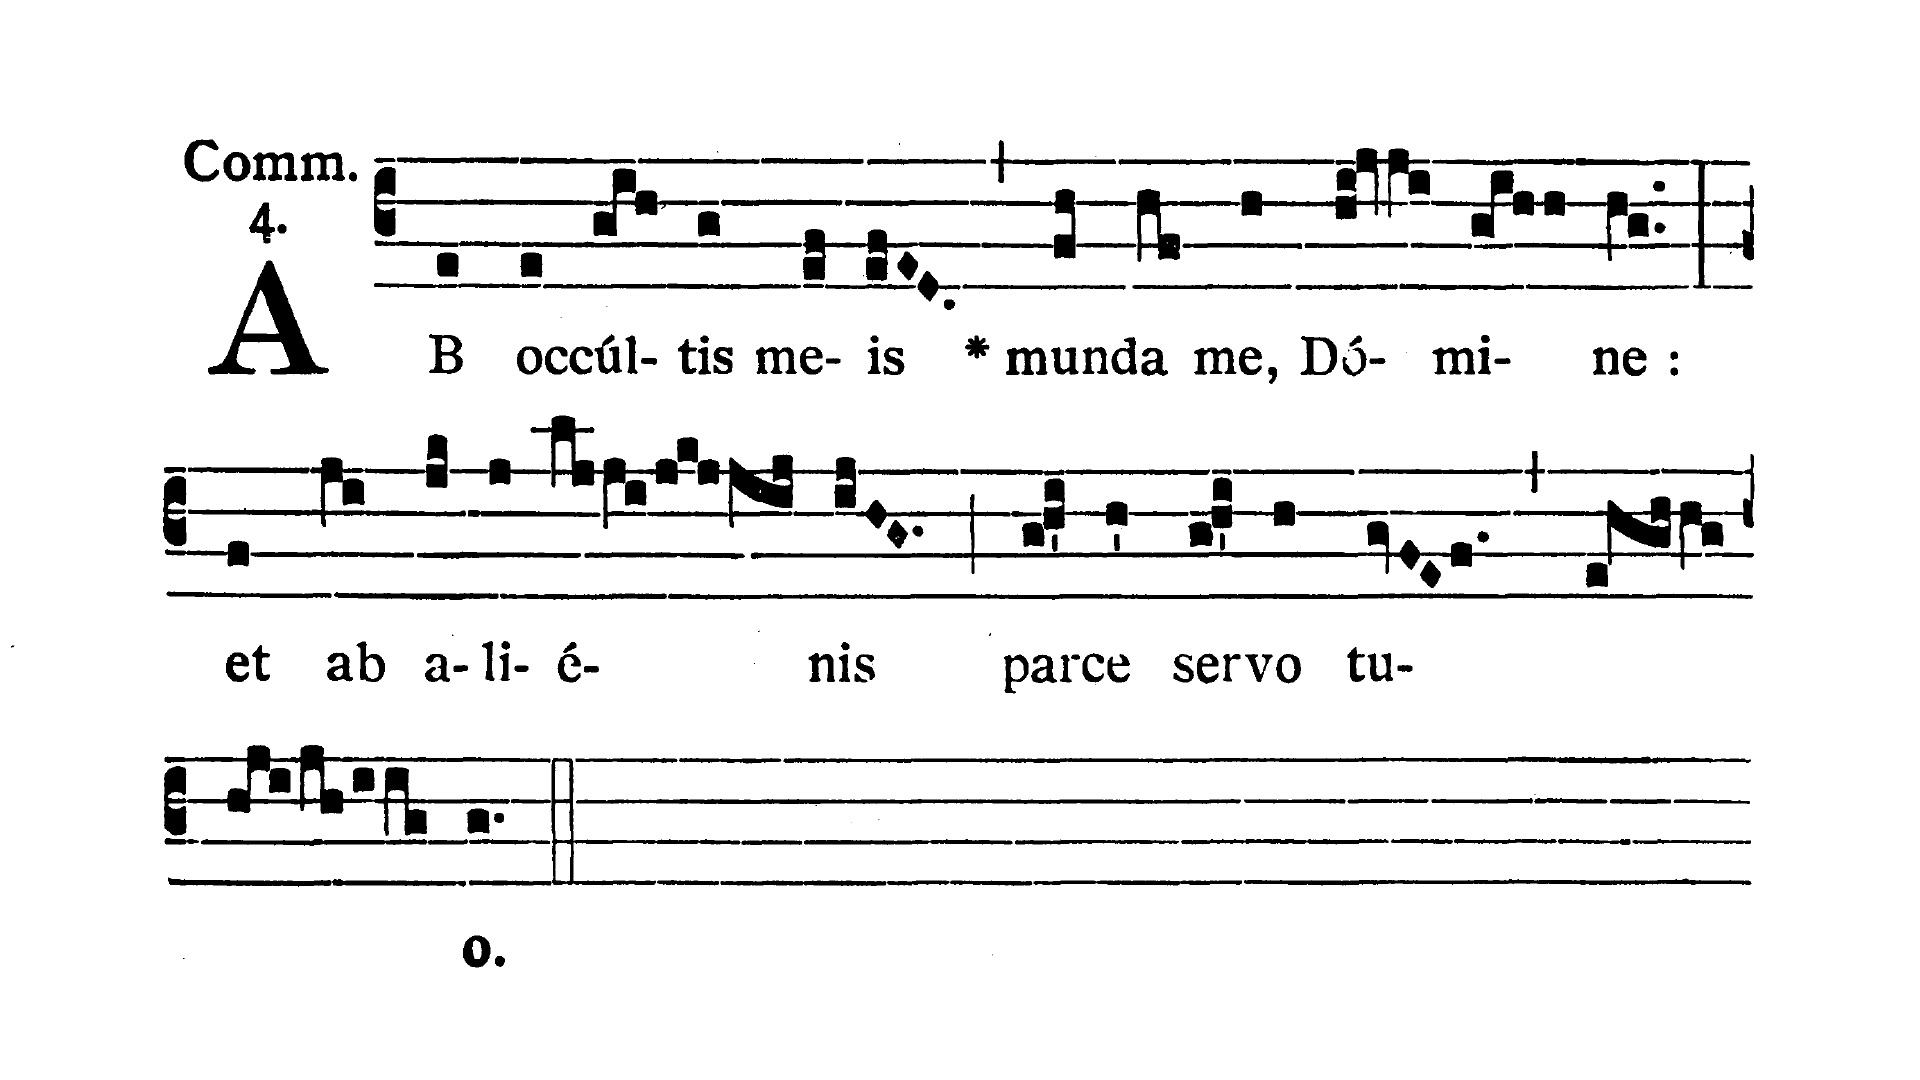 Feria II post Dominicam IV Quadragesimae (Monday after Fourth Sunday of Lent) - Communio (Ab occultis meis)